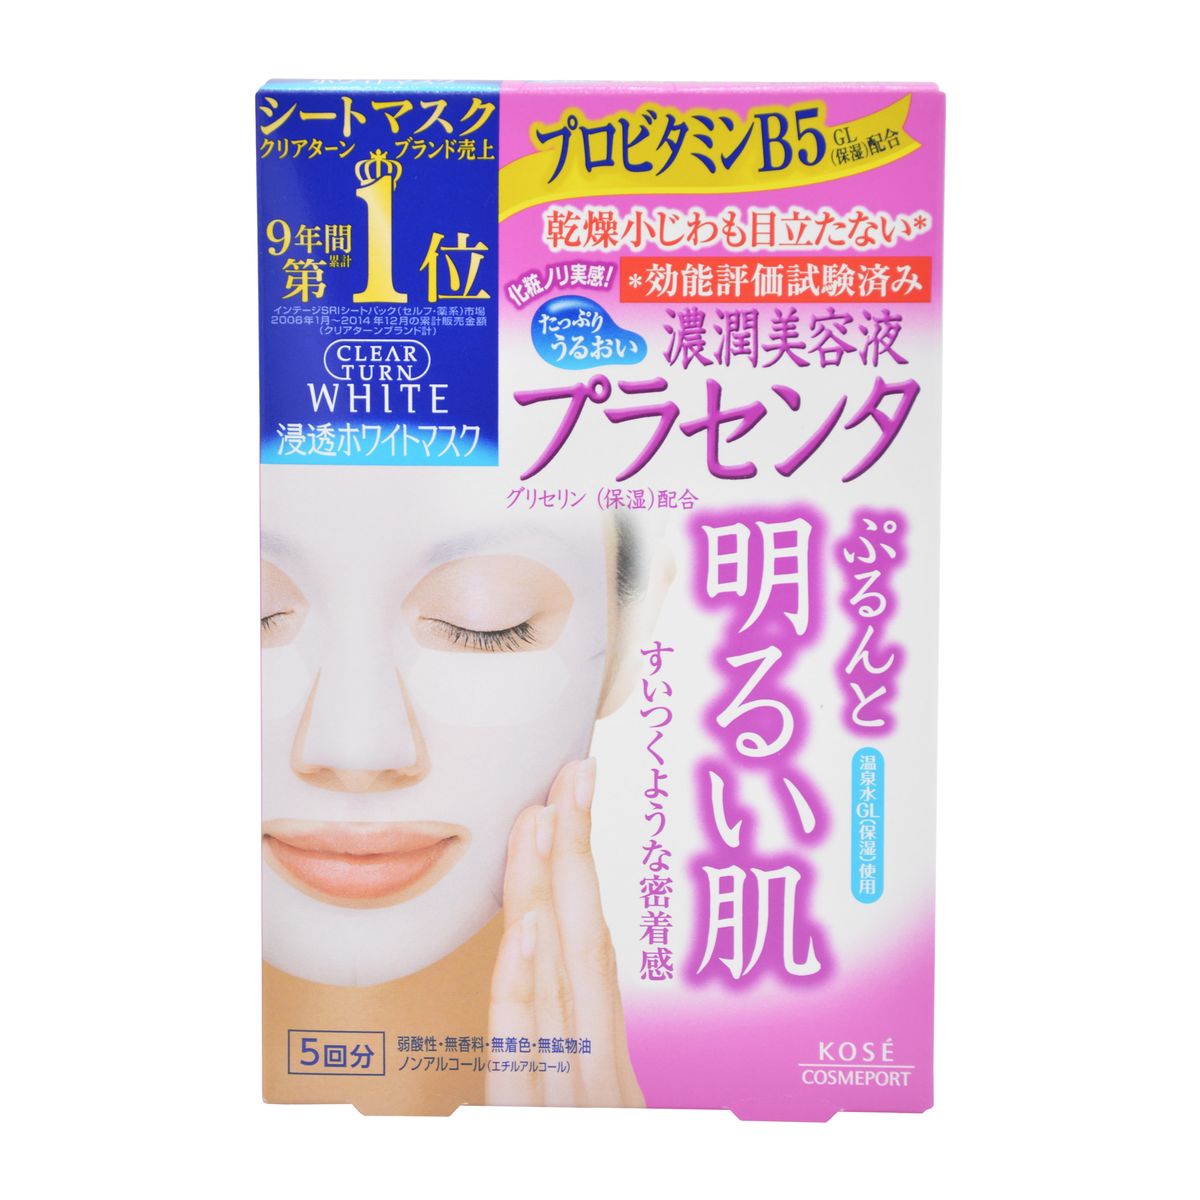 Clear Turn White Placenta Mask (5pcs) x1